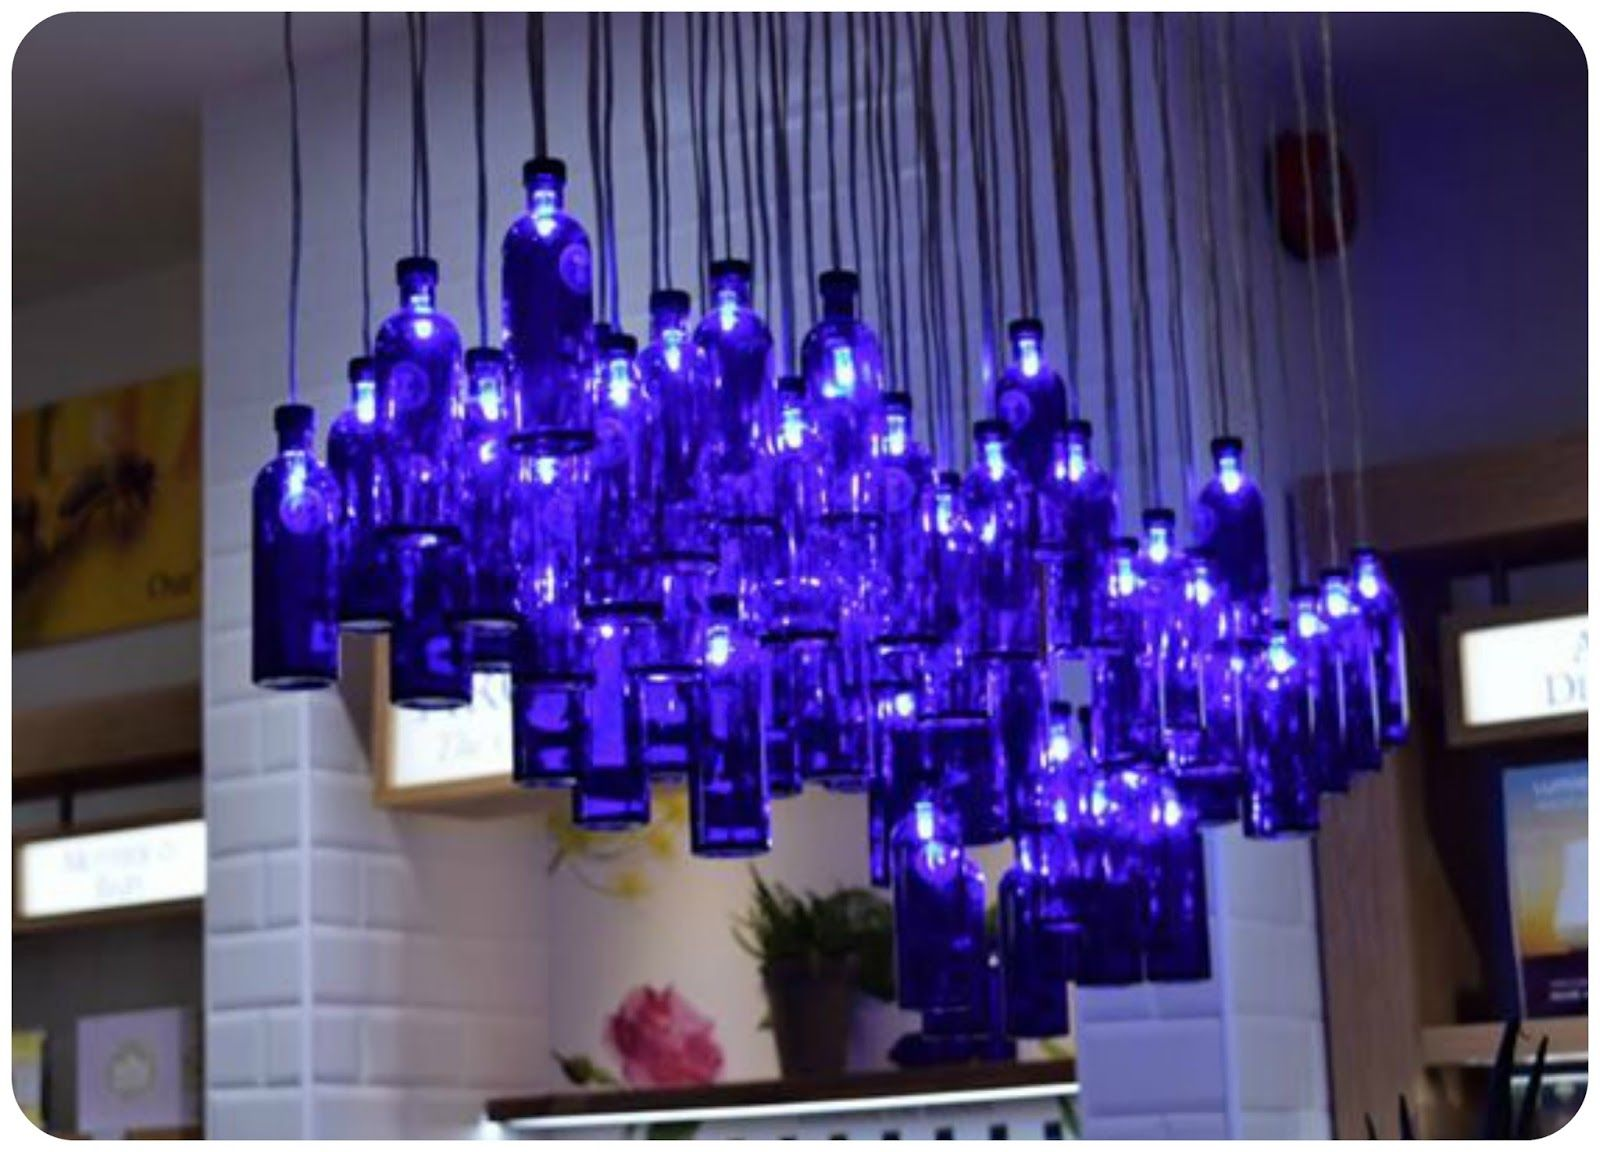 Bathroom Lights Manchester blue bottle light feature at neal's yard, manchester | neat ideas